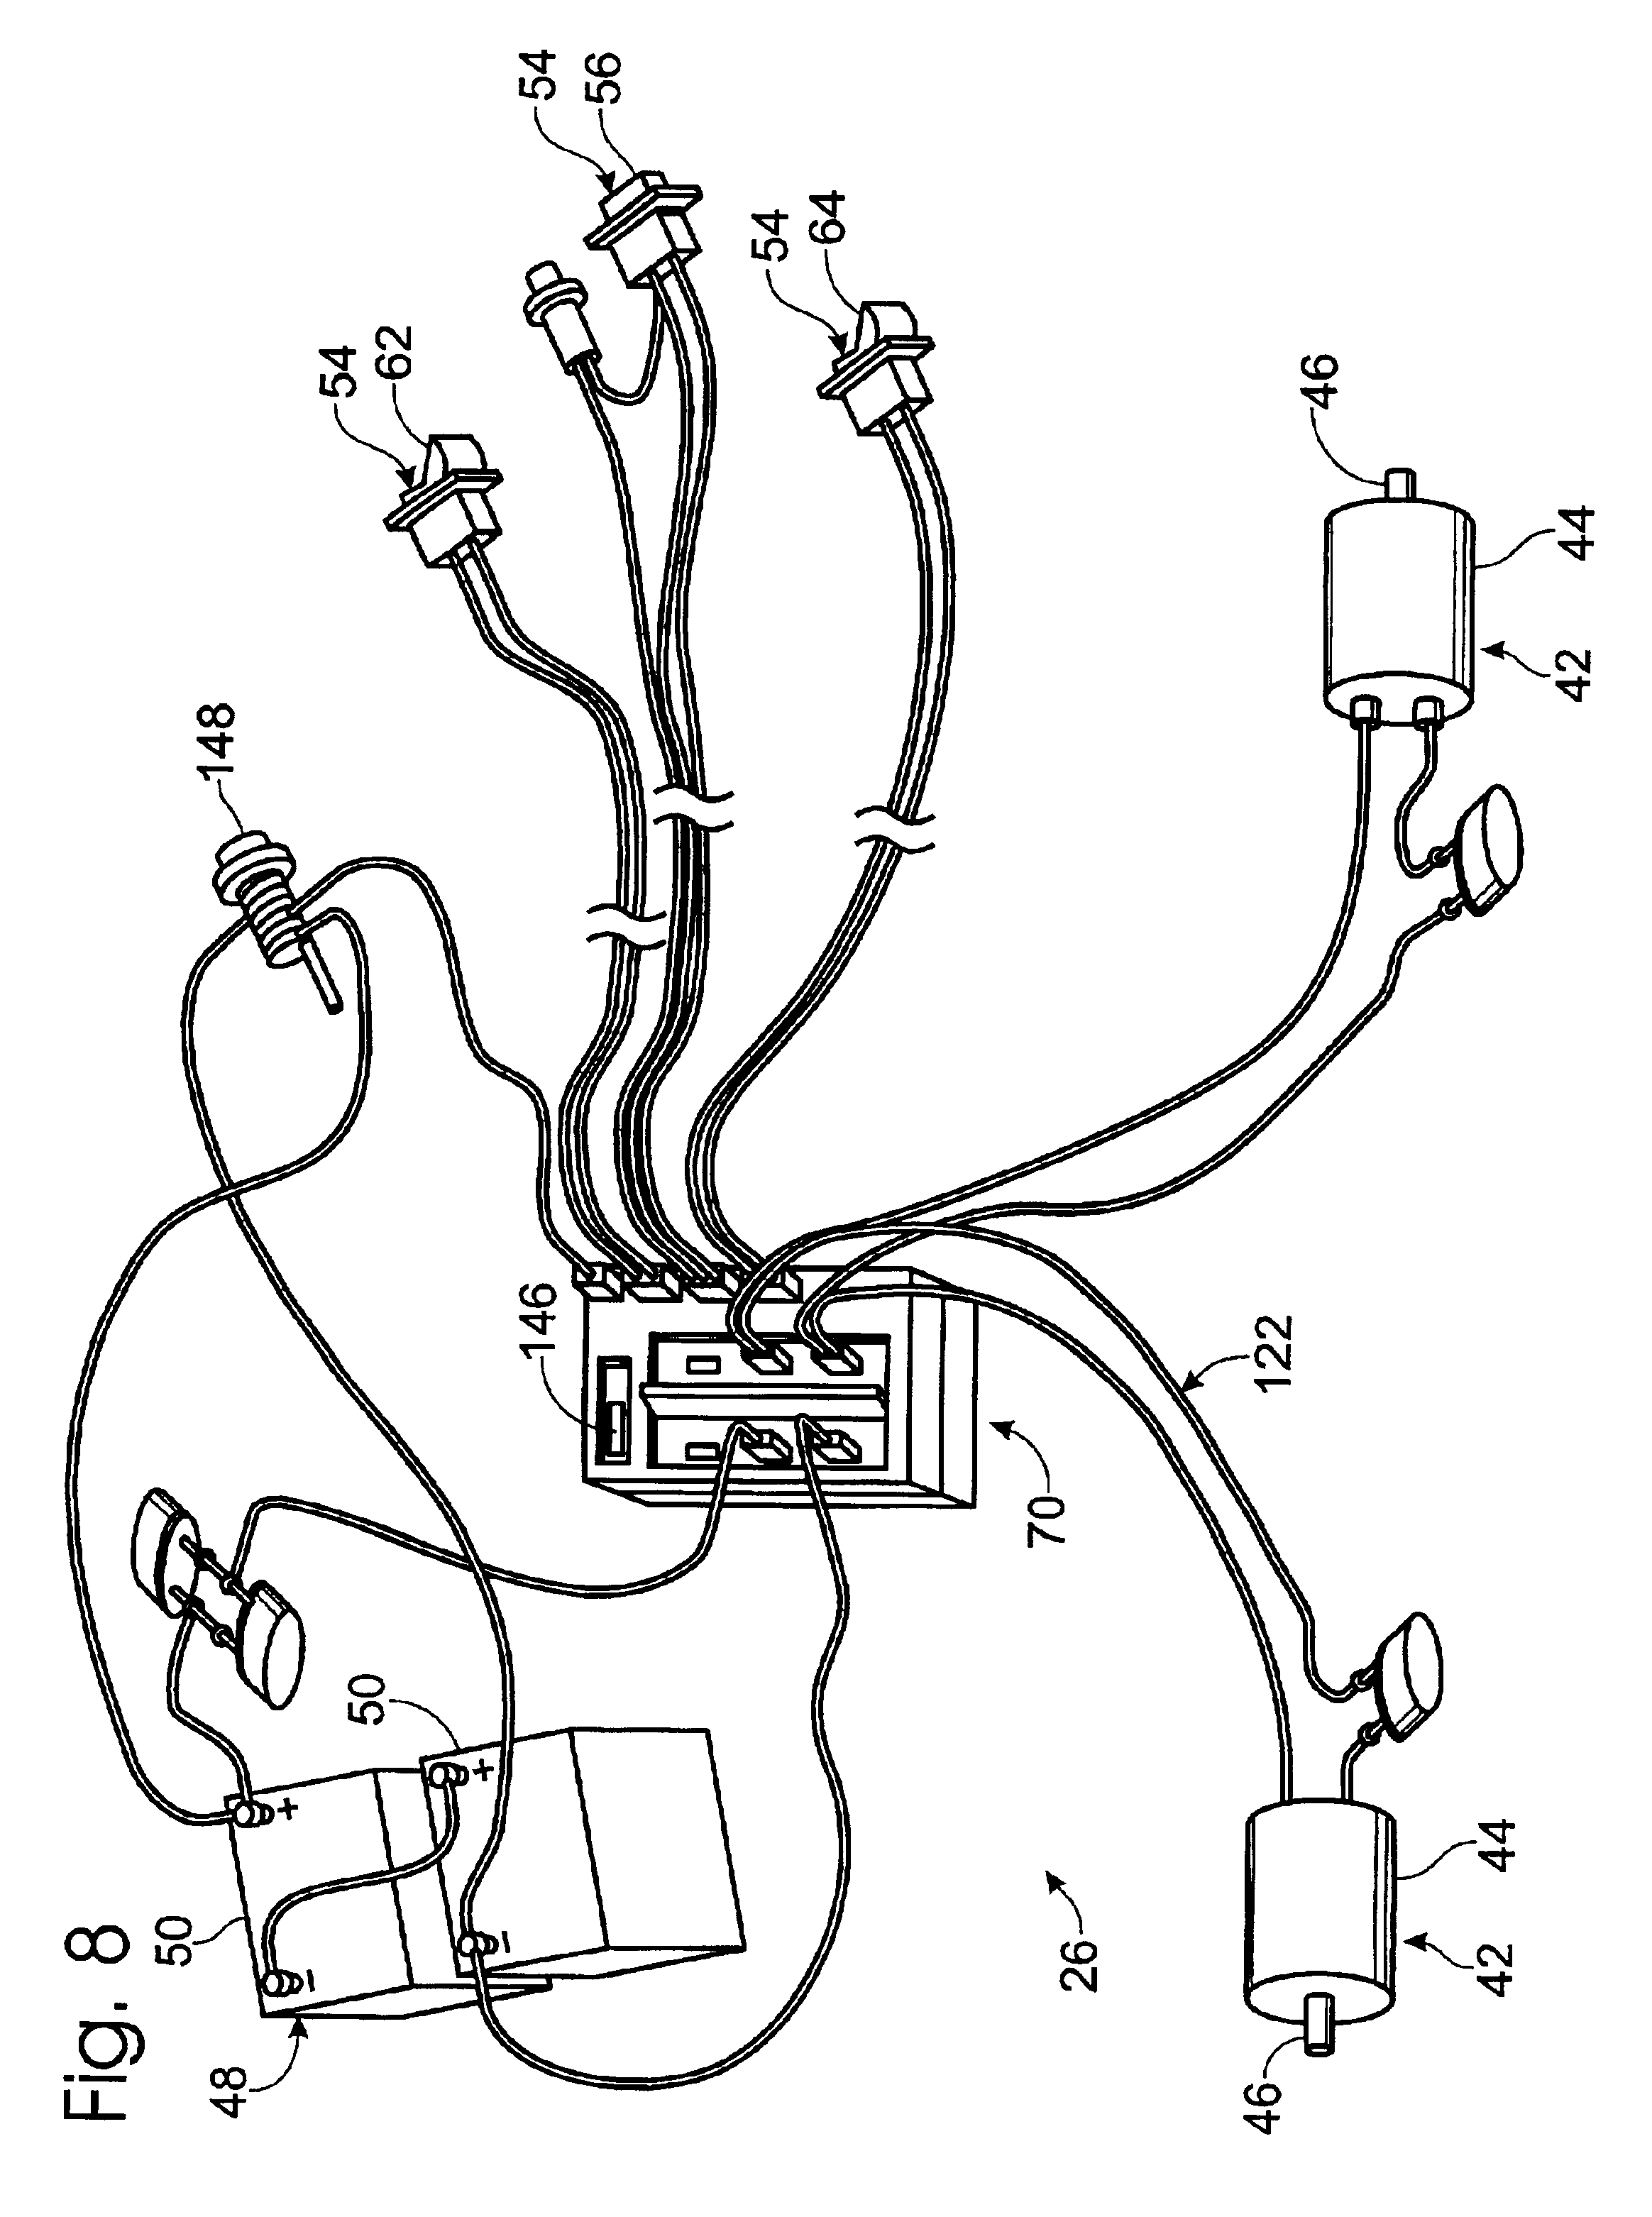 wiring rib relay diagrams pictures wiring discover wiring two batteries 12v power wheels wiring rib relay diagrams